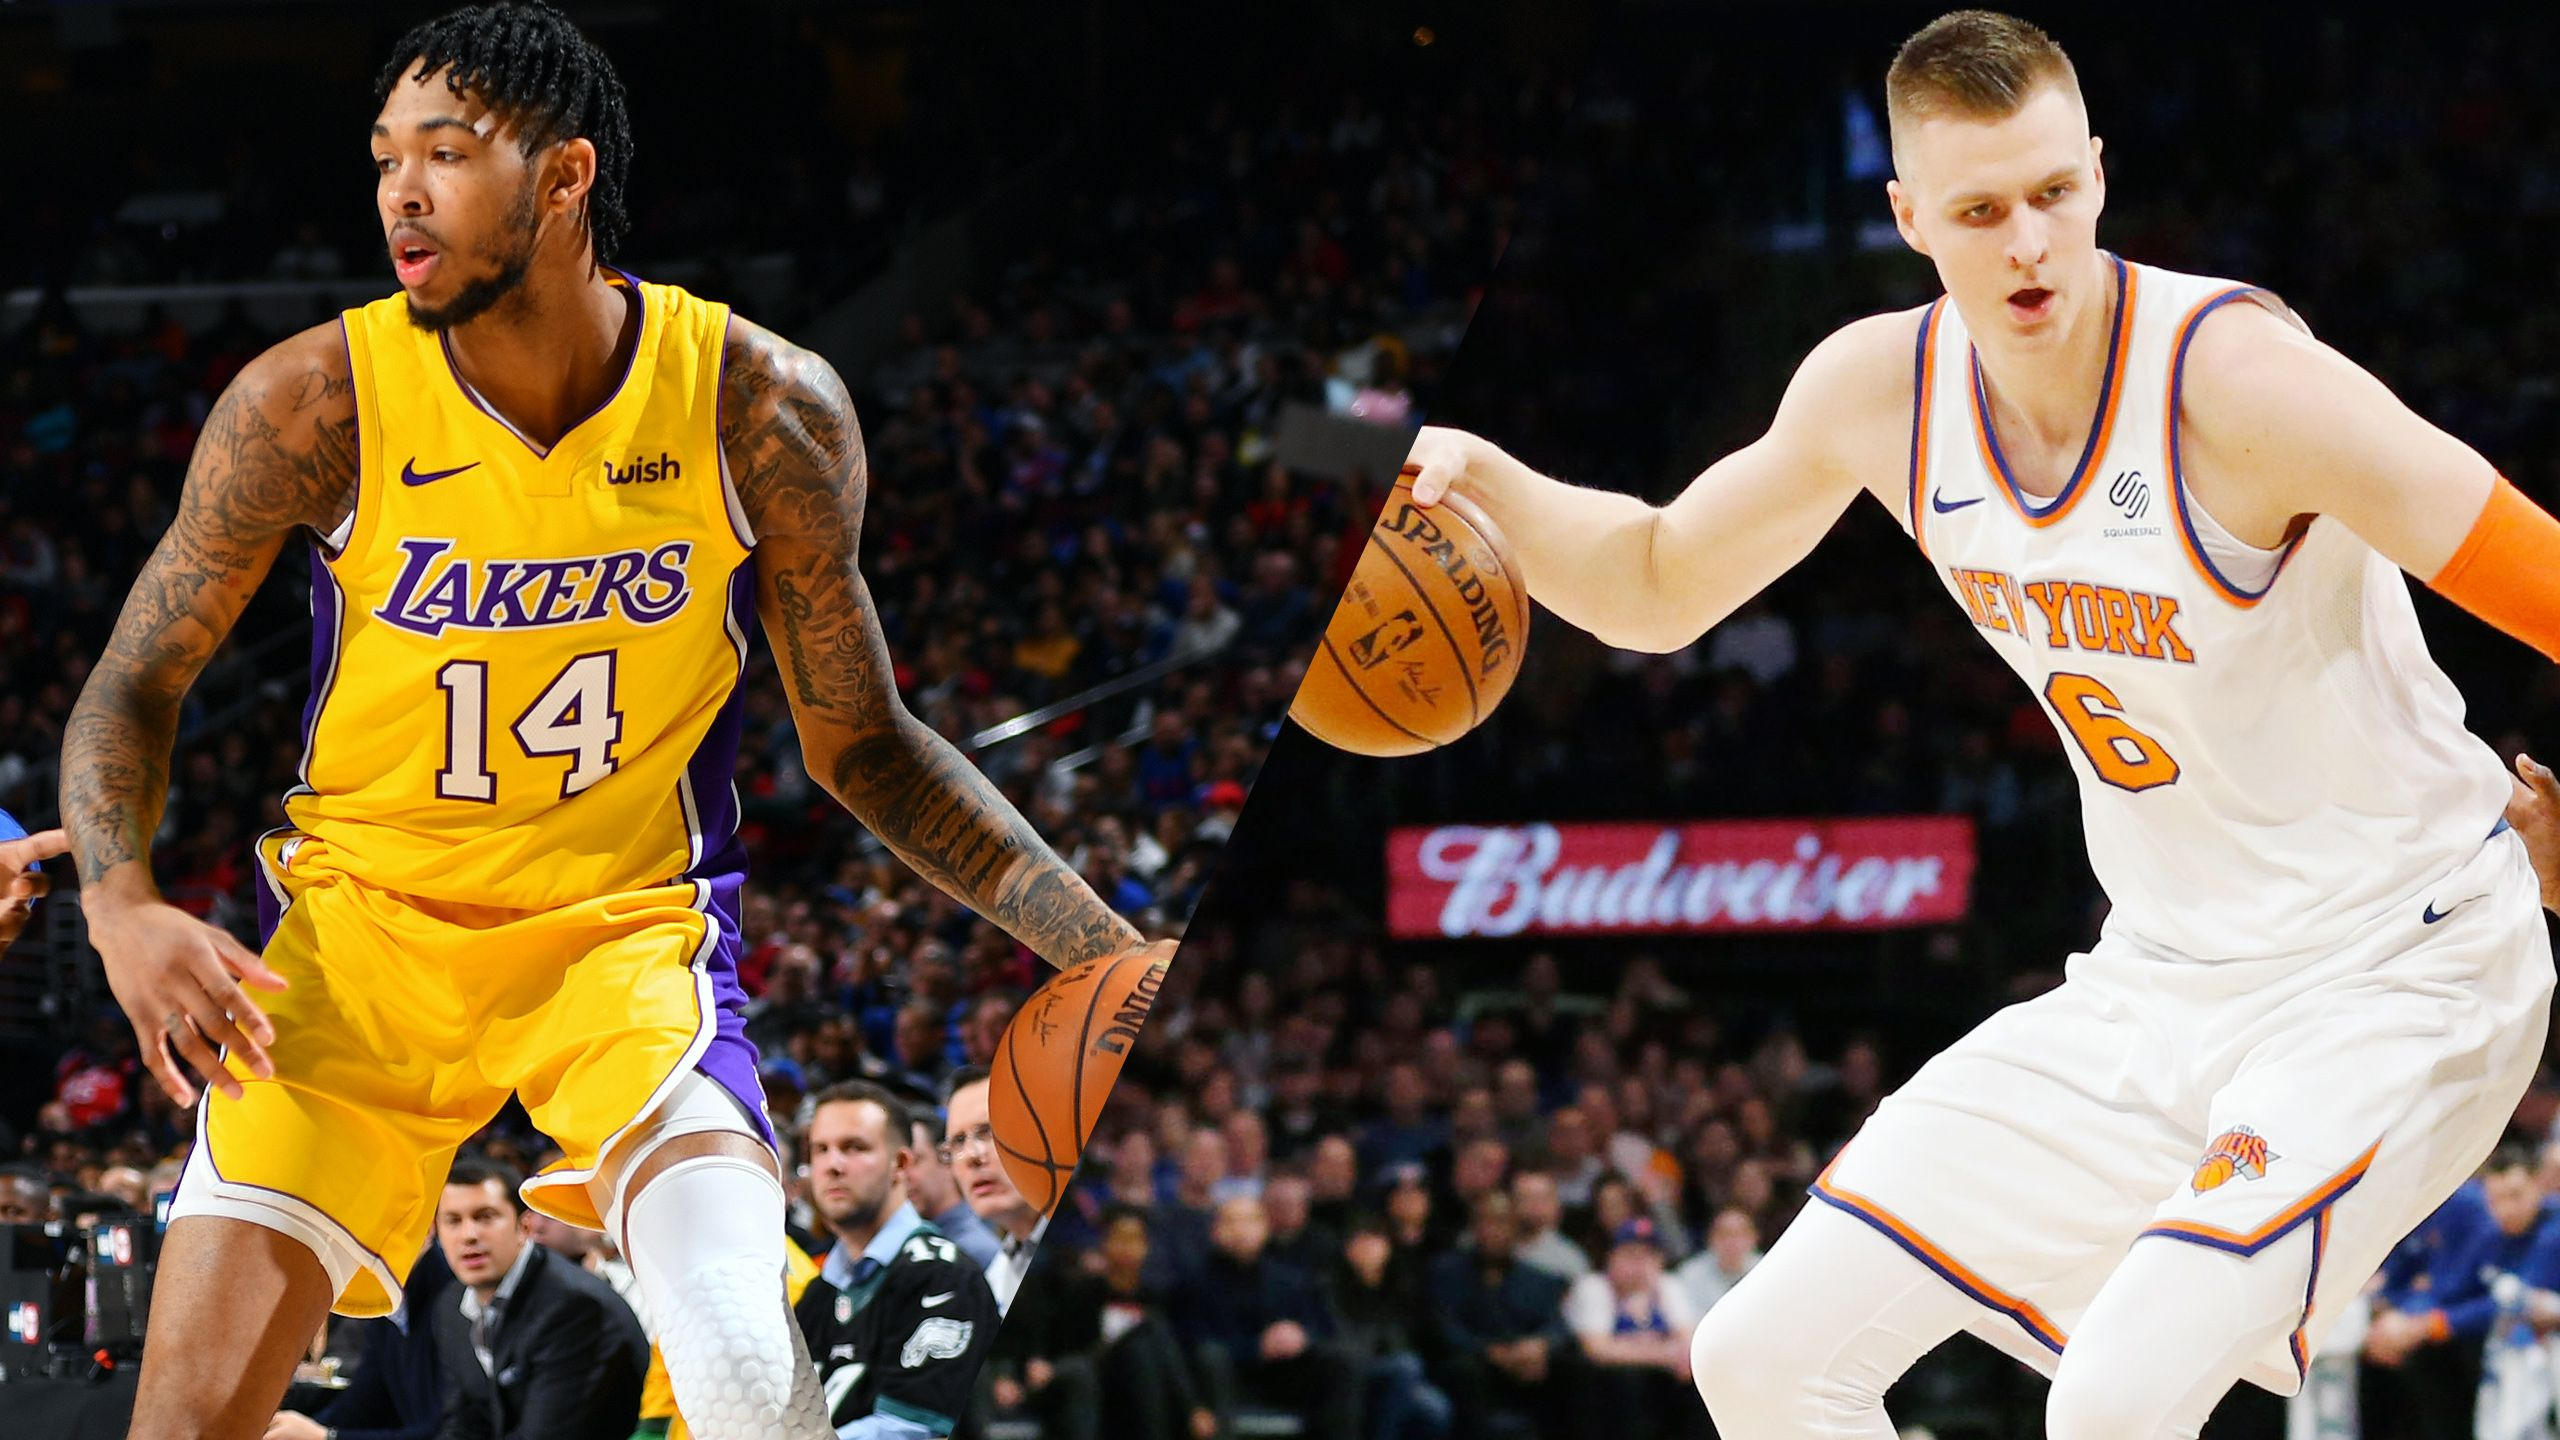 Los Angeles Lakers vs. New York Knicks (re-air)